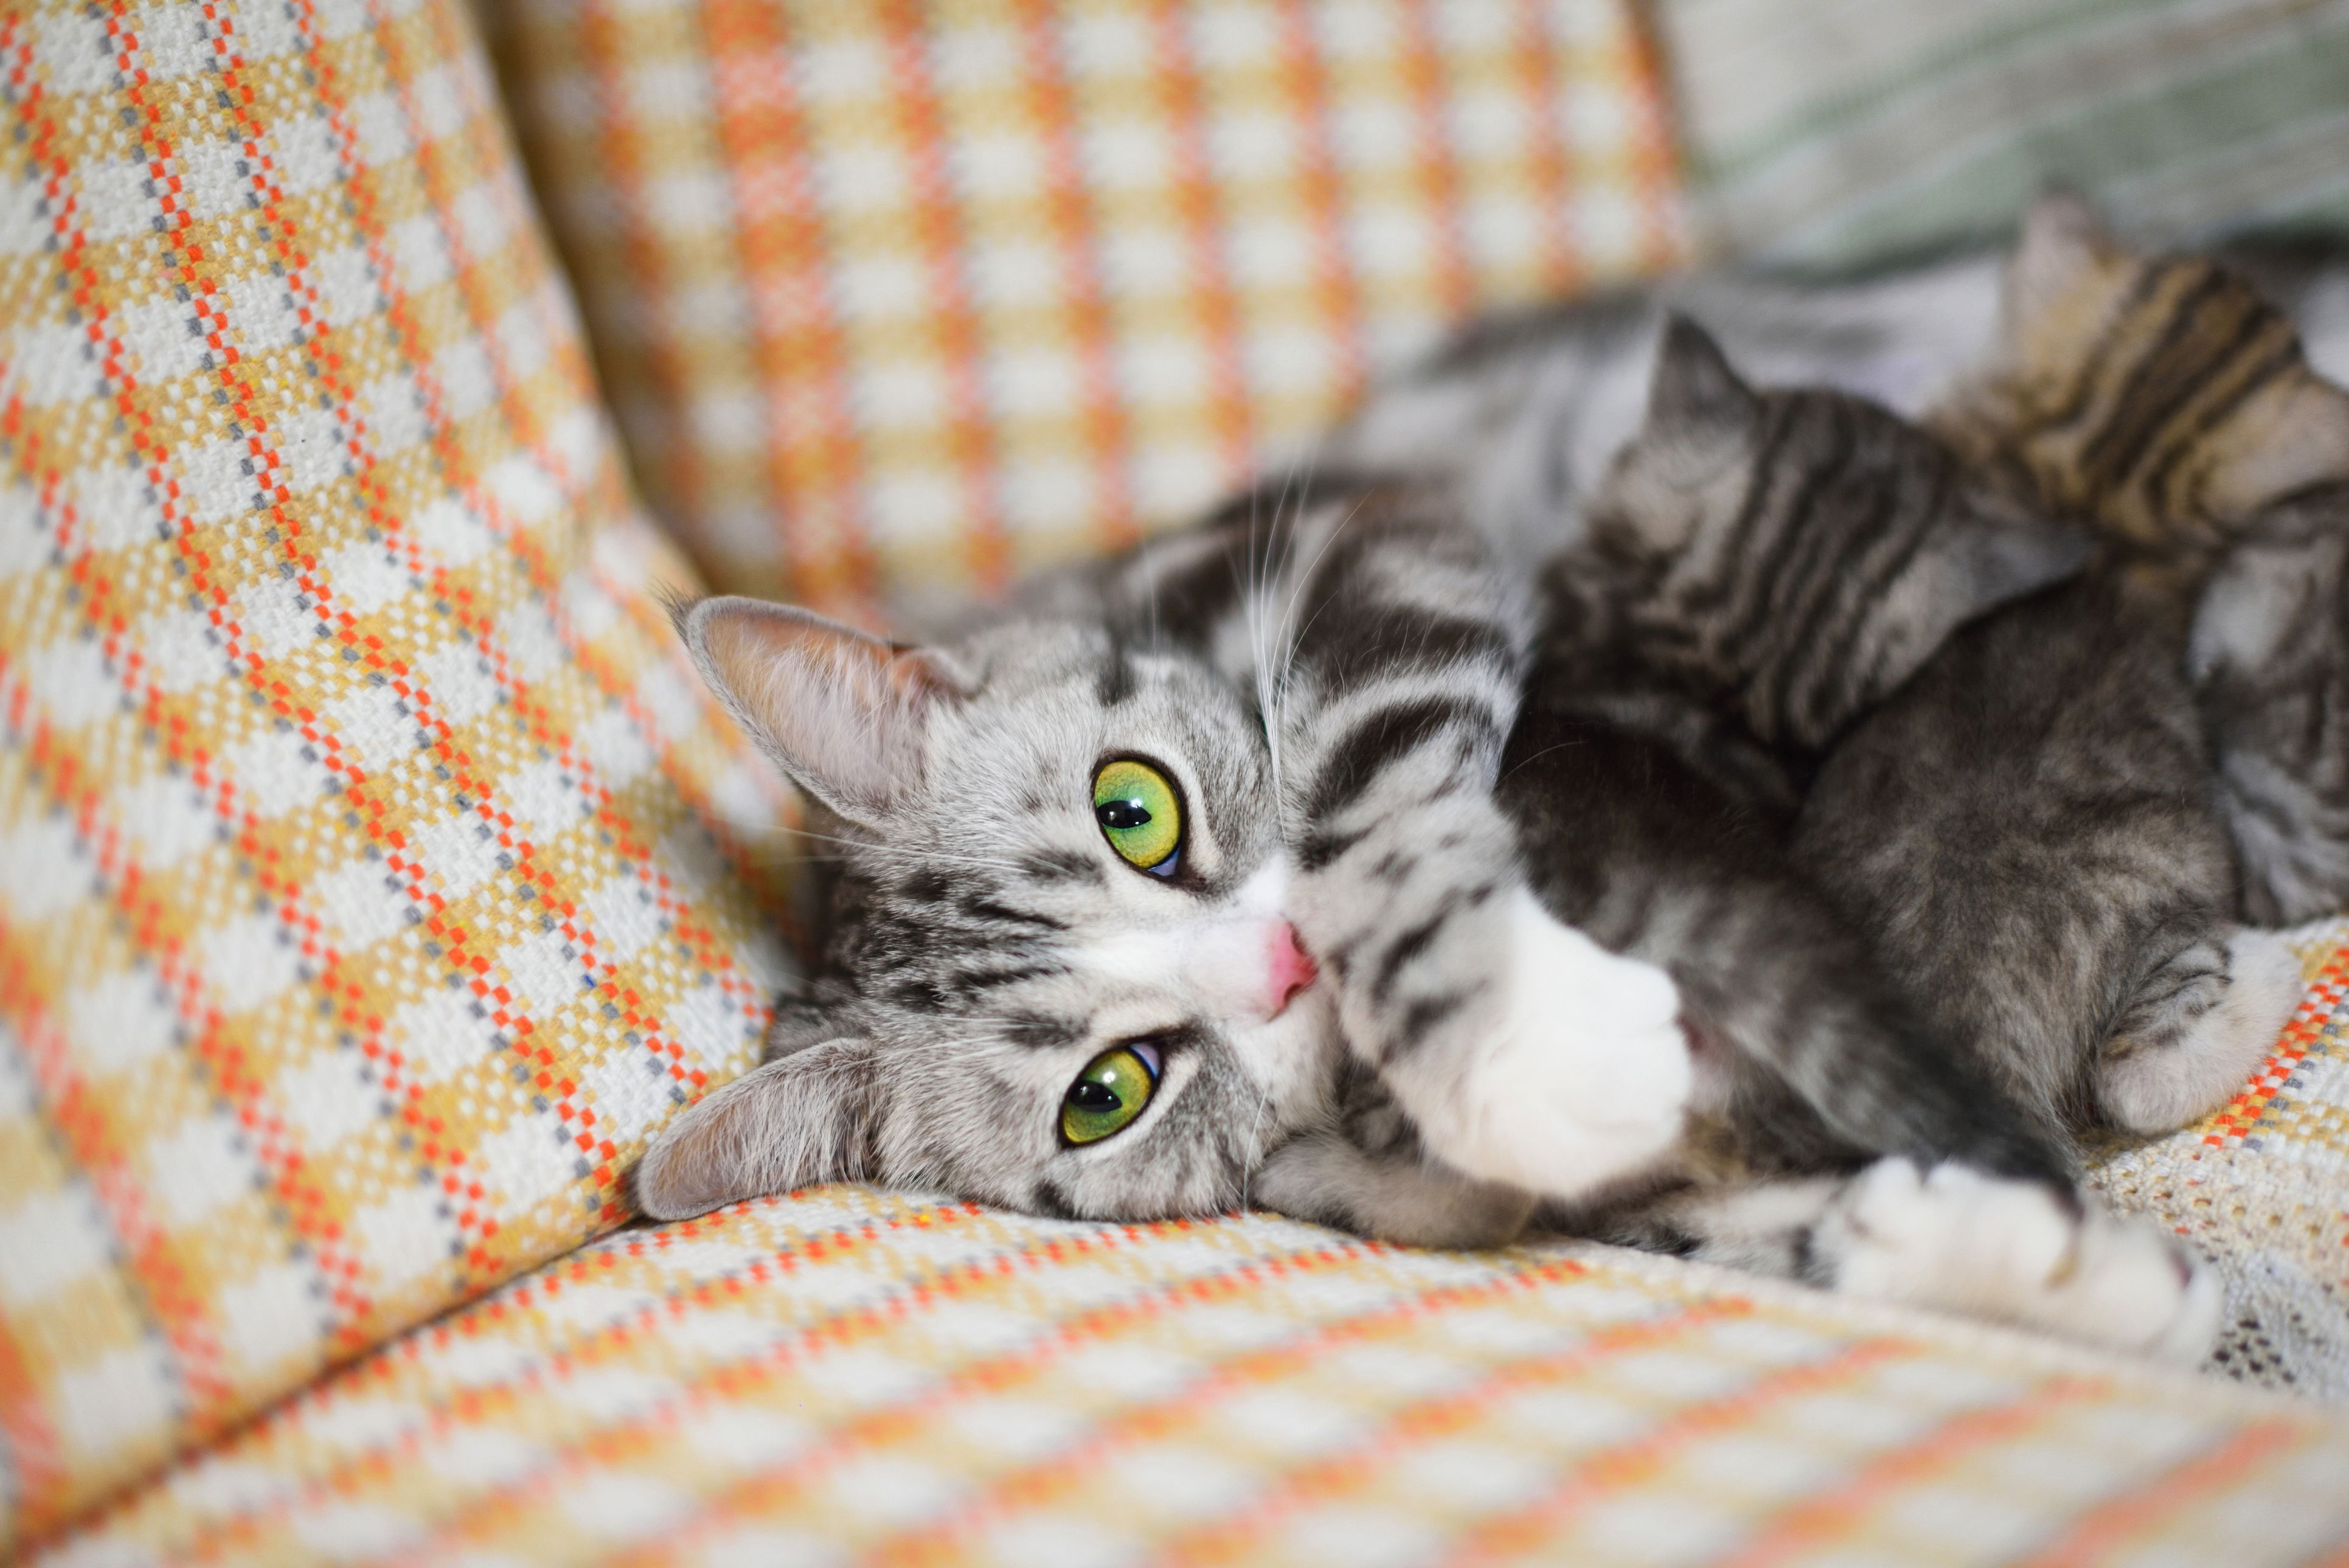 Unlike Dogs Cats Will Go Into Heat Often If Not Spayed Learn What To Expect During The Feline Estrus Cycle And How Long Your Cat Wi Cat In Heat Cats Cat